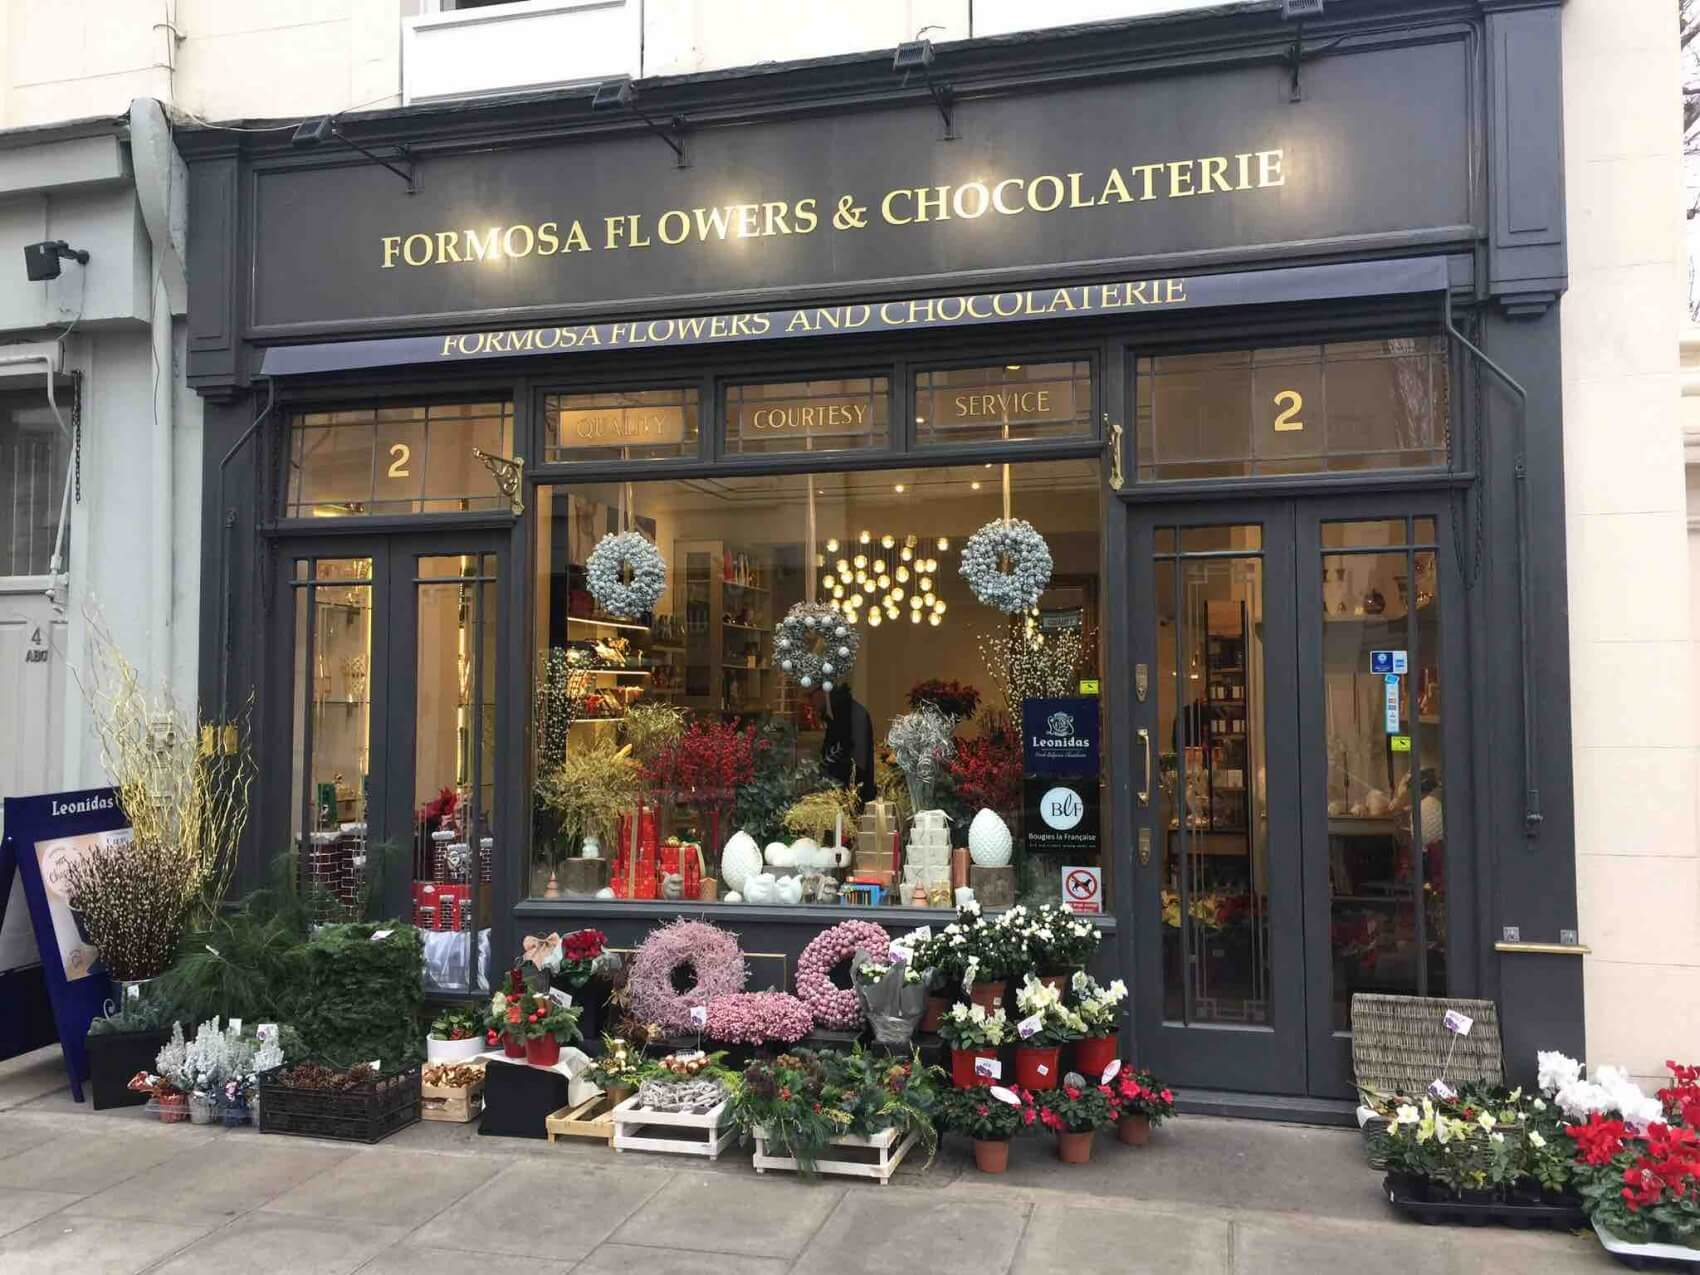 Formose Flowers and Chocolaterie